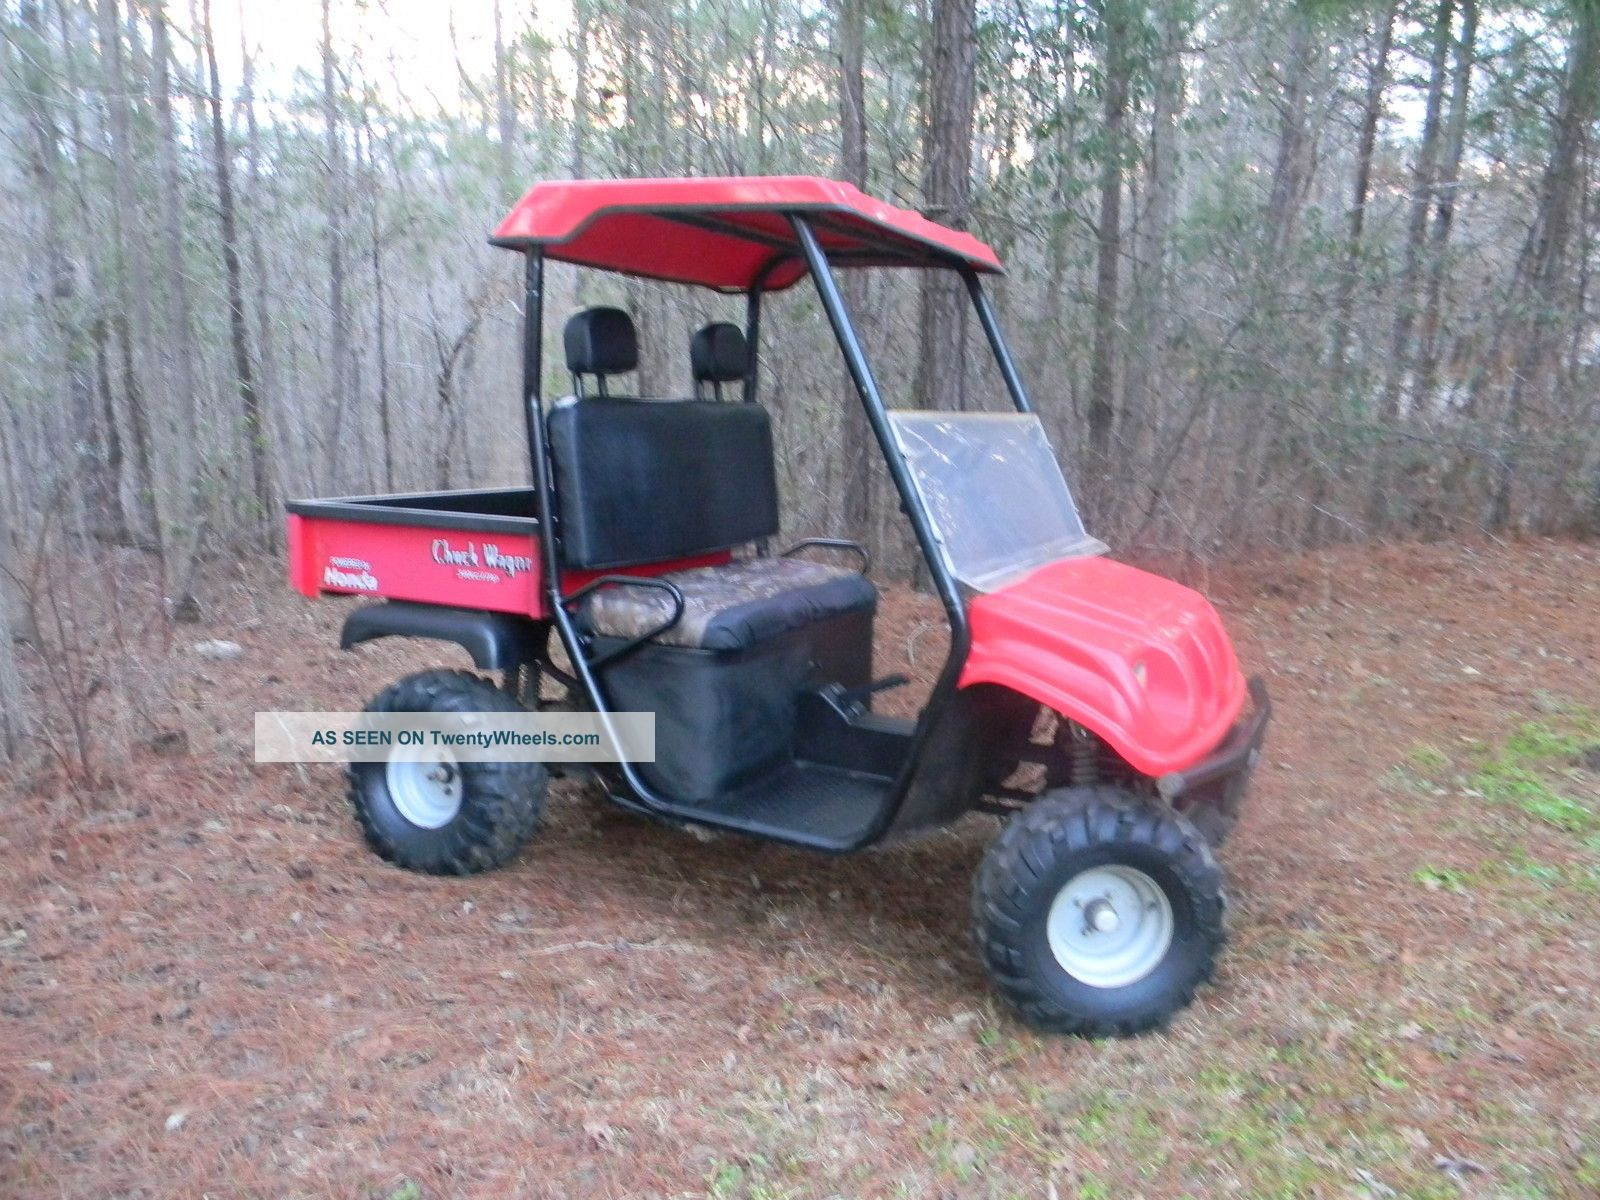 Honda Chuck Wagon Utv Related Keywords & Suggestions - Honda Chuck